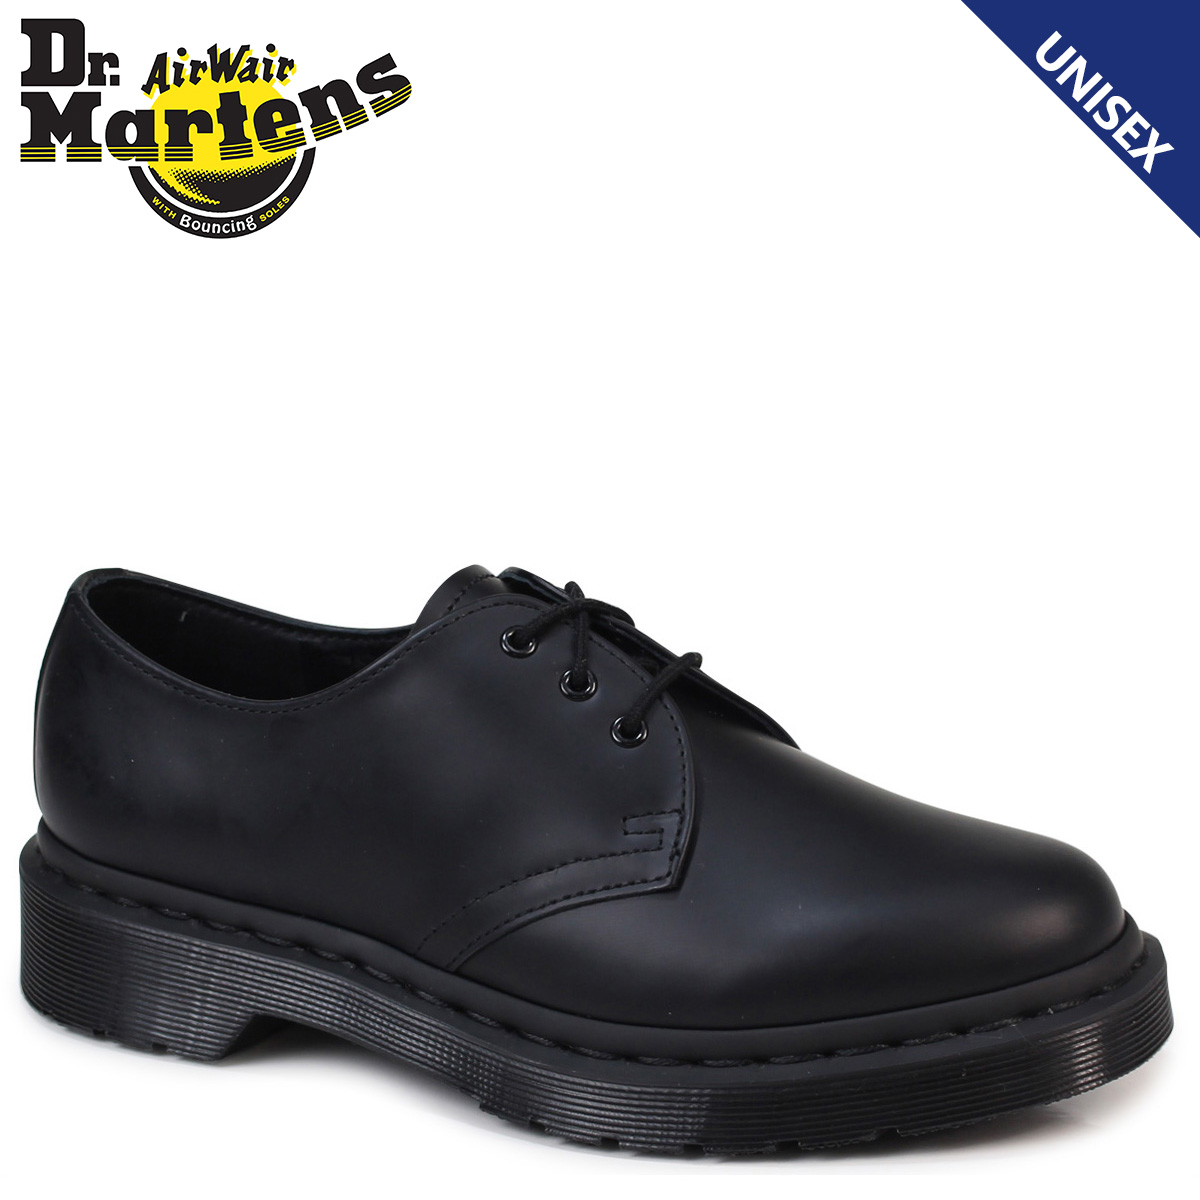 Dr.Martens and☆ 1461 MONO/PART OF THE CORE COLLECTION ☆. 1461 3 Hall shoes  / 3 EYE 1461 SHOE. BLACK